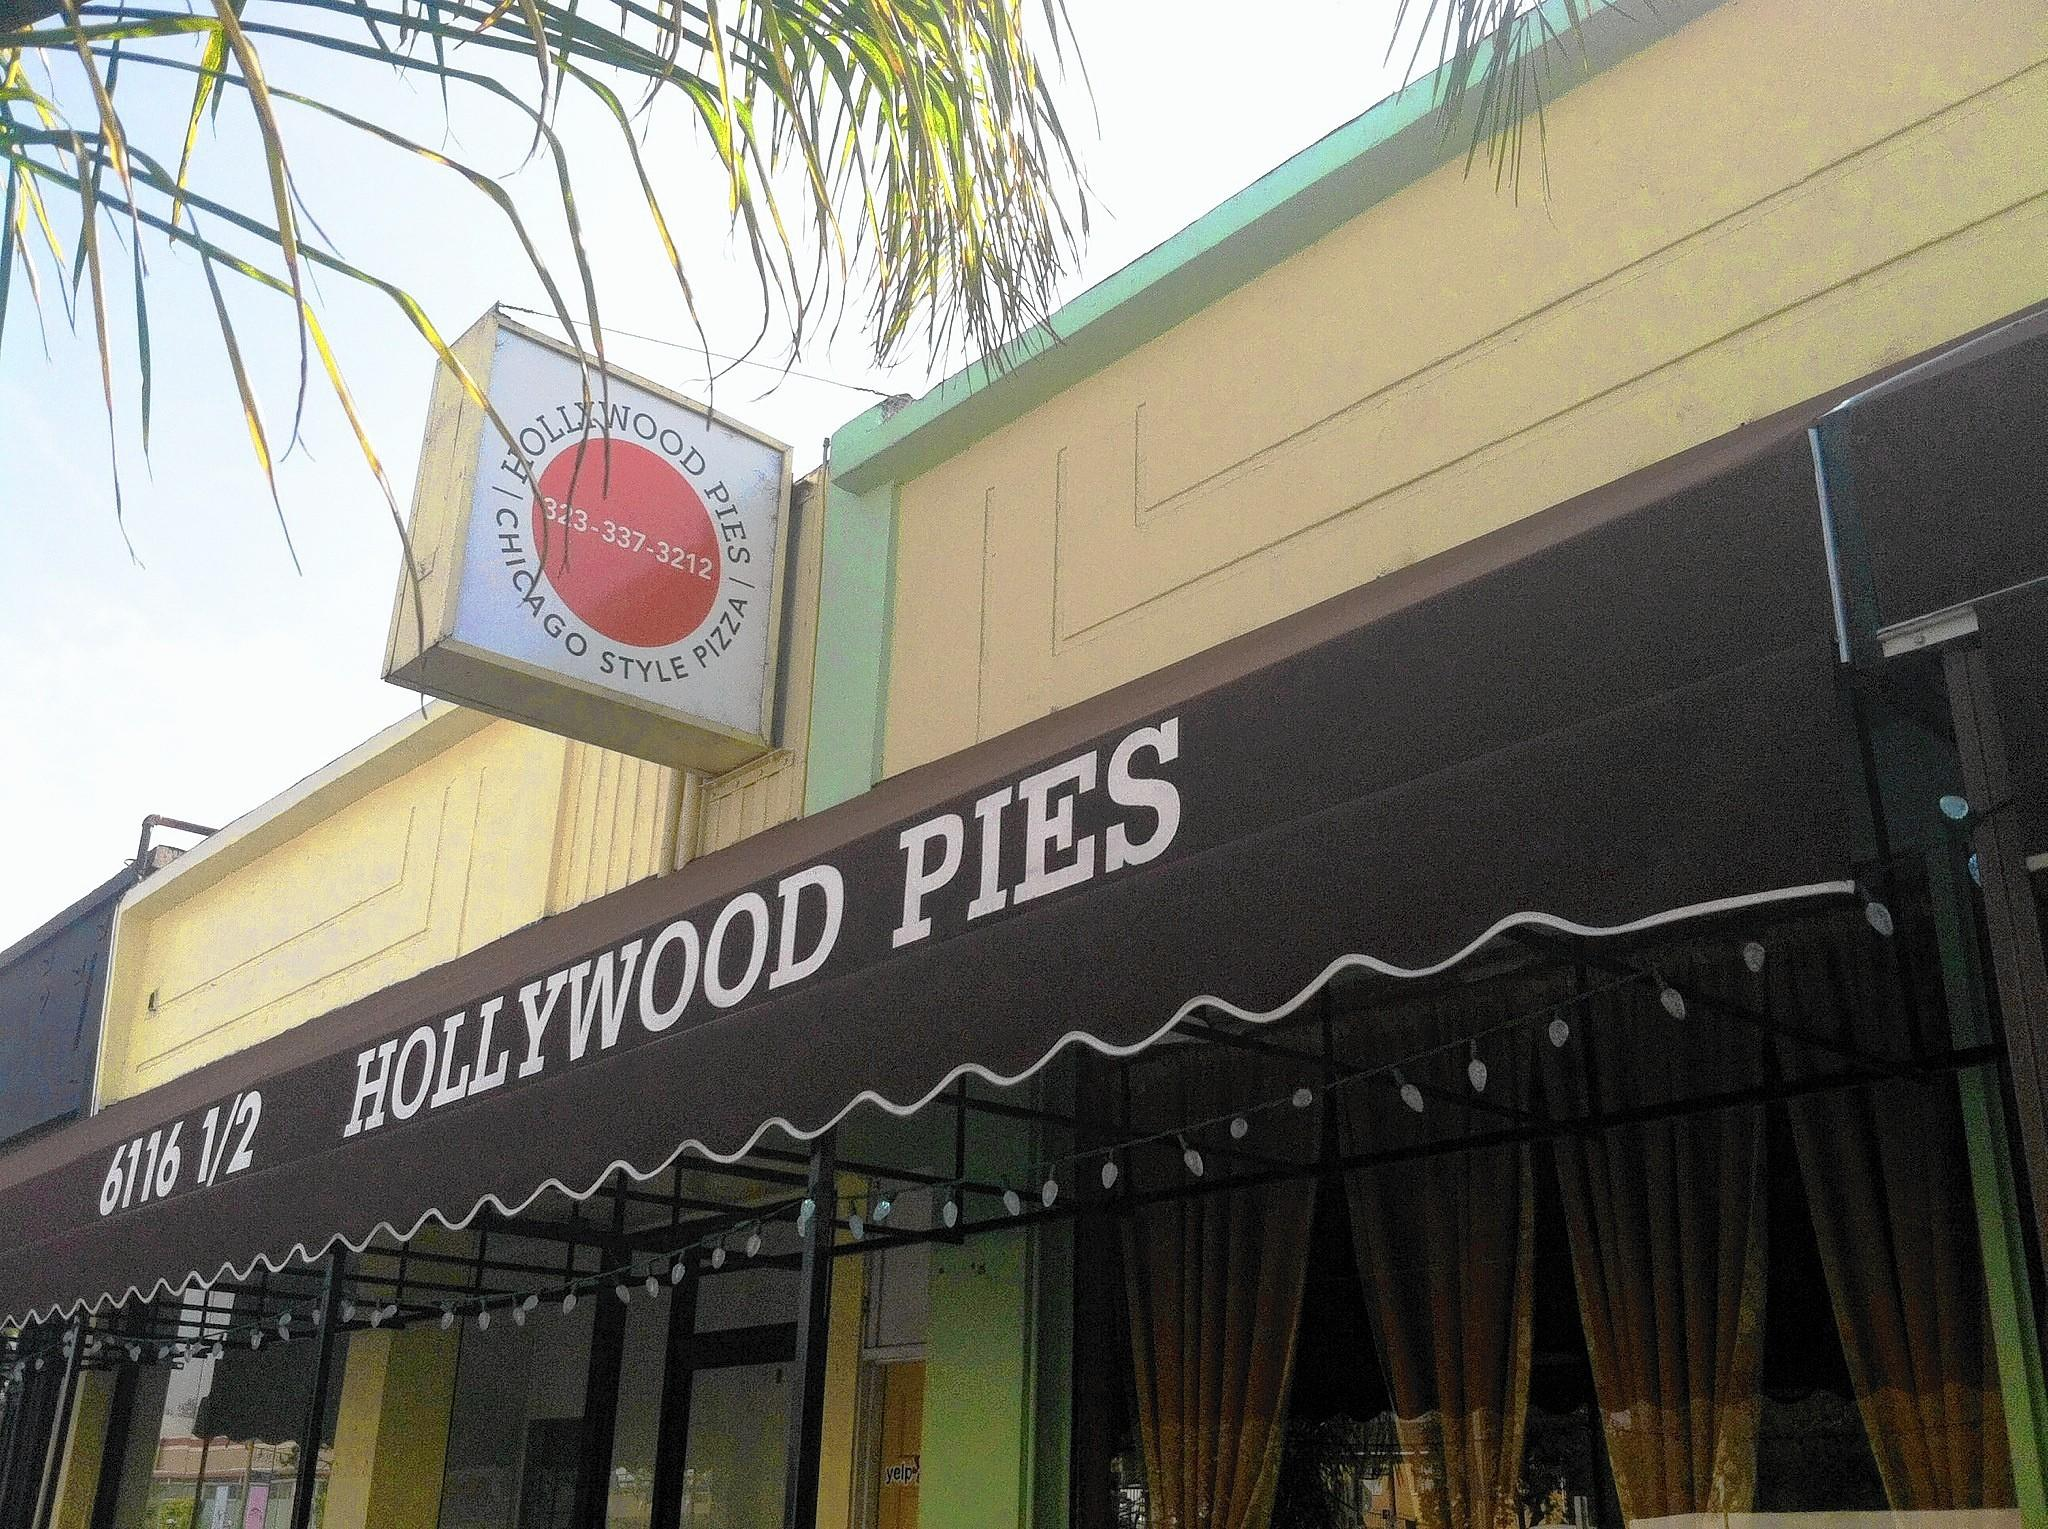 Hollywood Pies serves up Chicago-style pizza in Los Angeles.